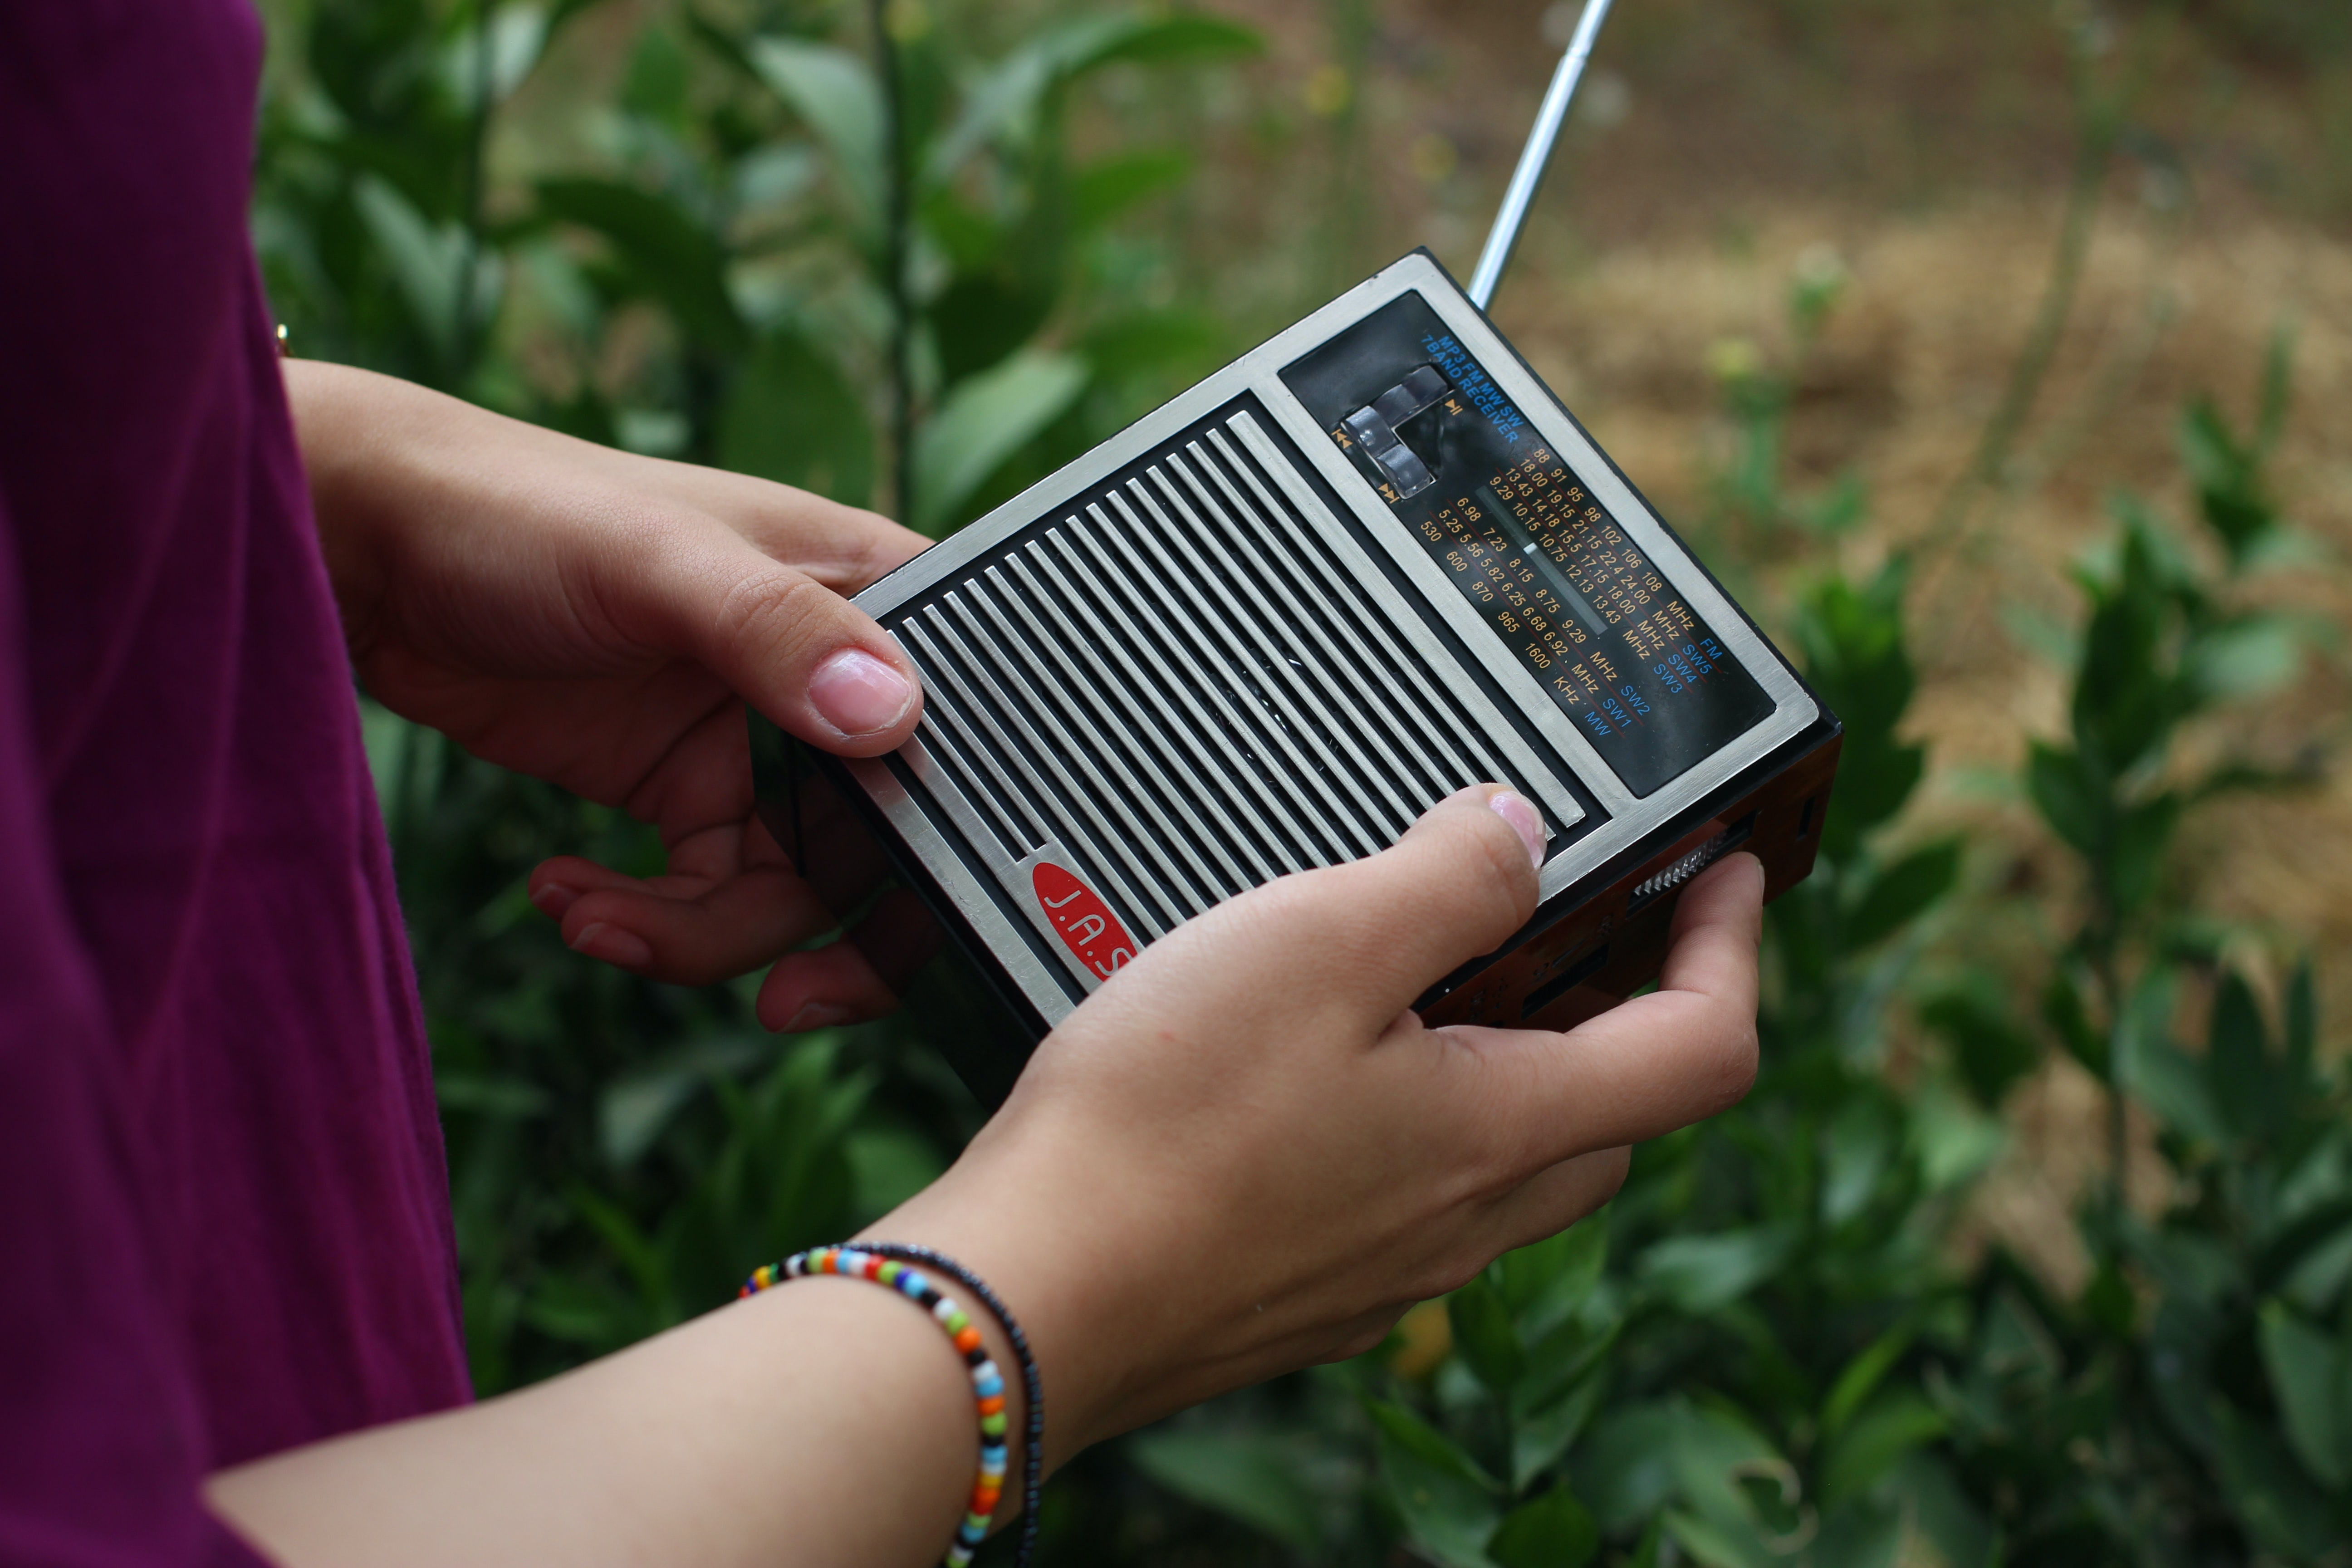 AMG's radio ministry provides a safe way for many to hear the Gospel